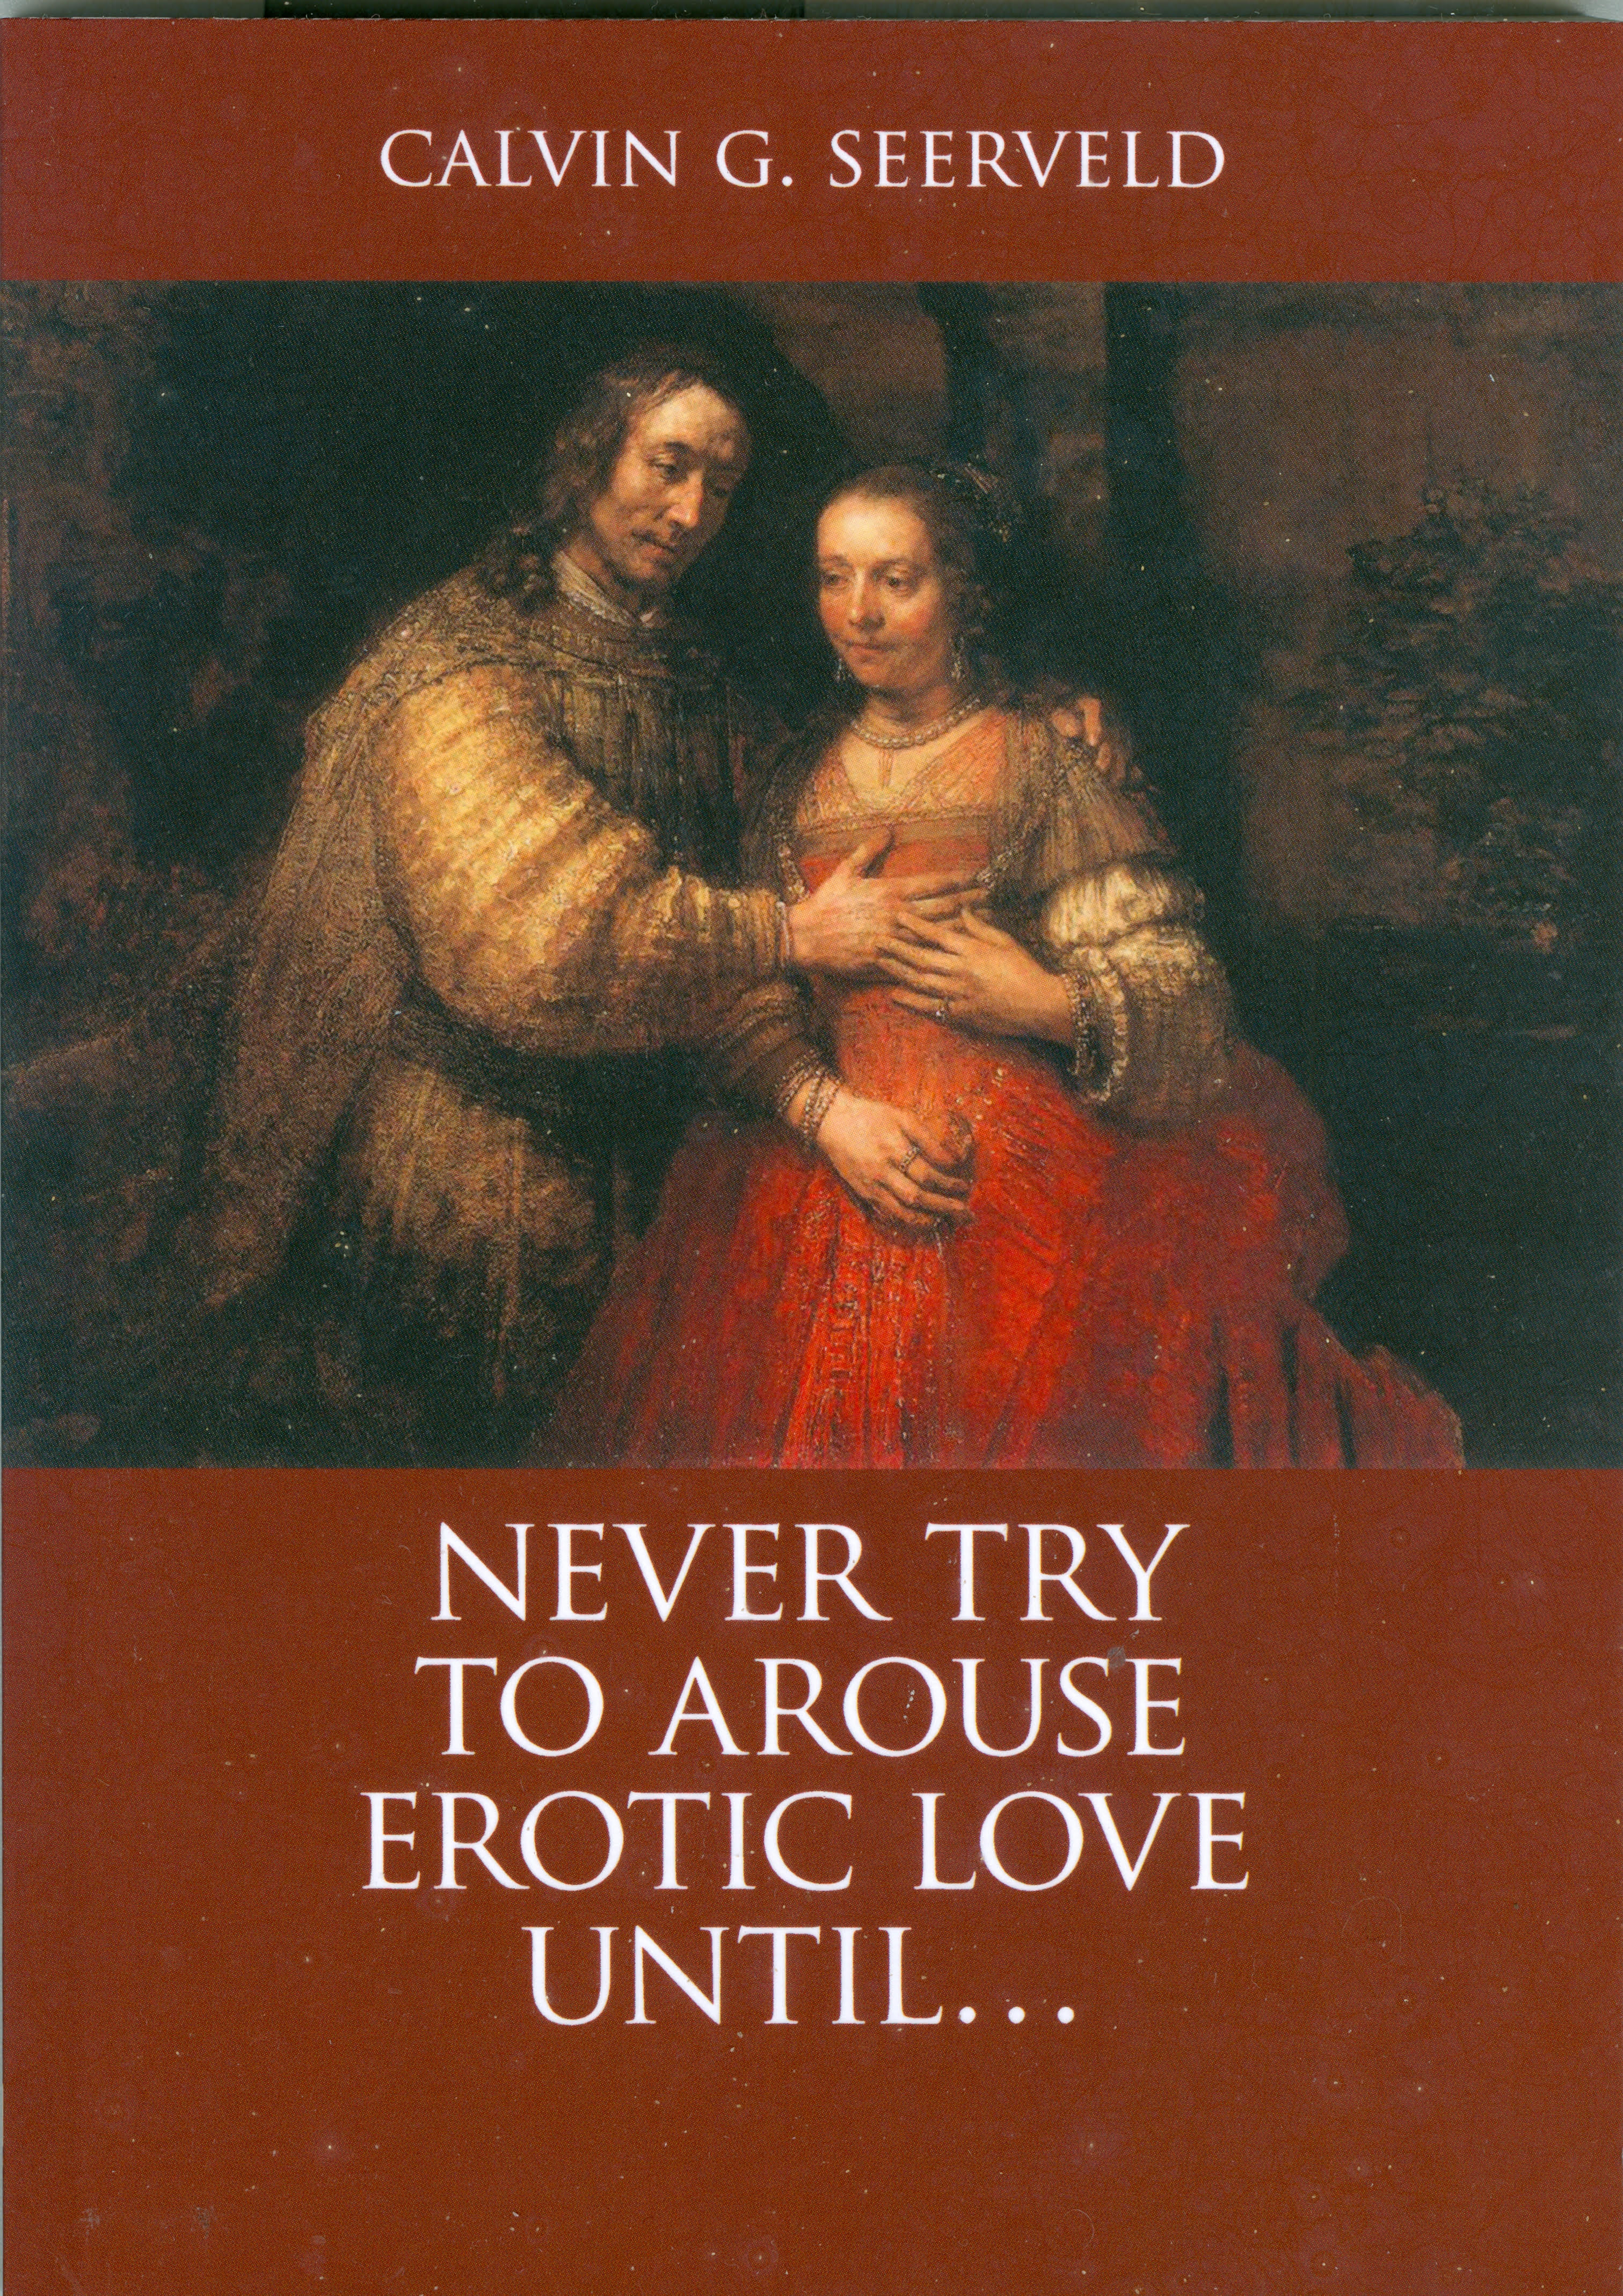 Never try to arouse erotic love until... book cover